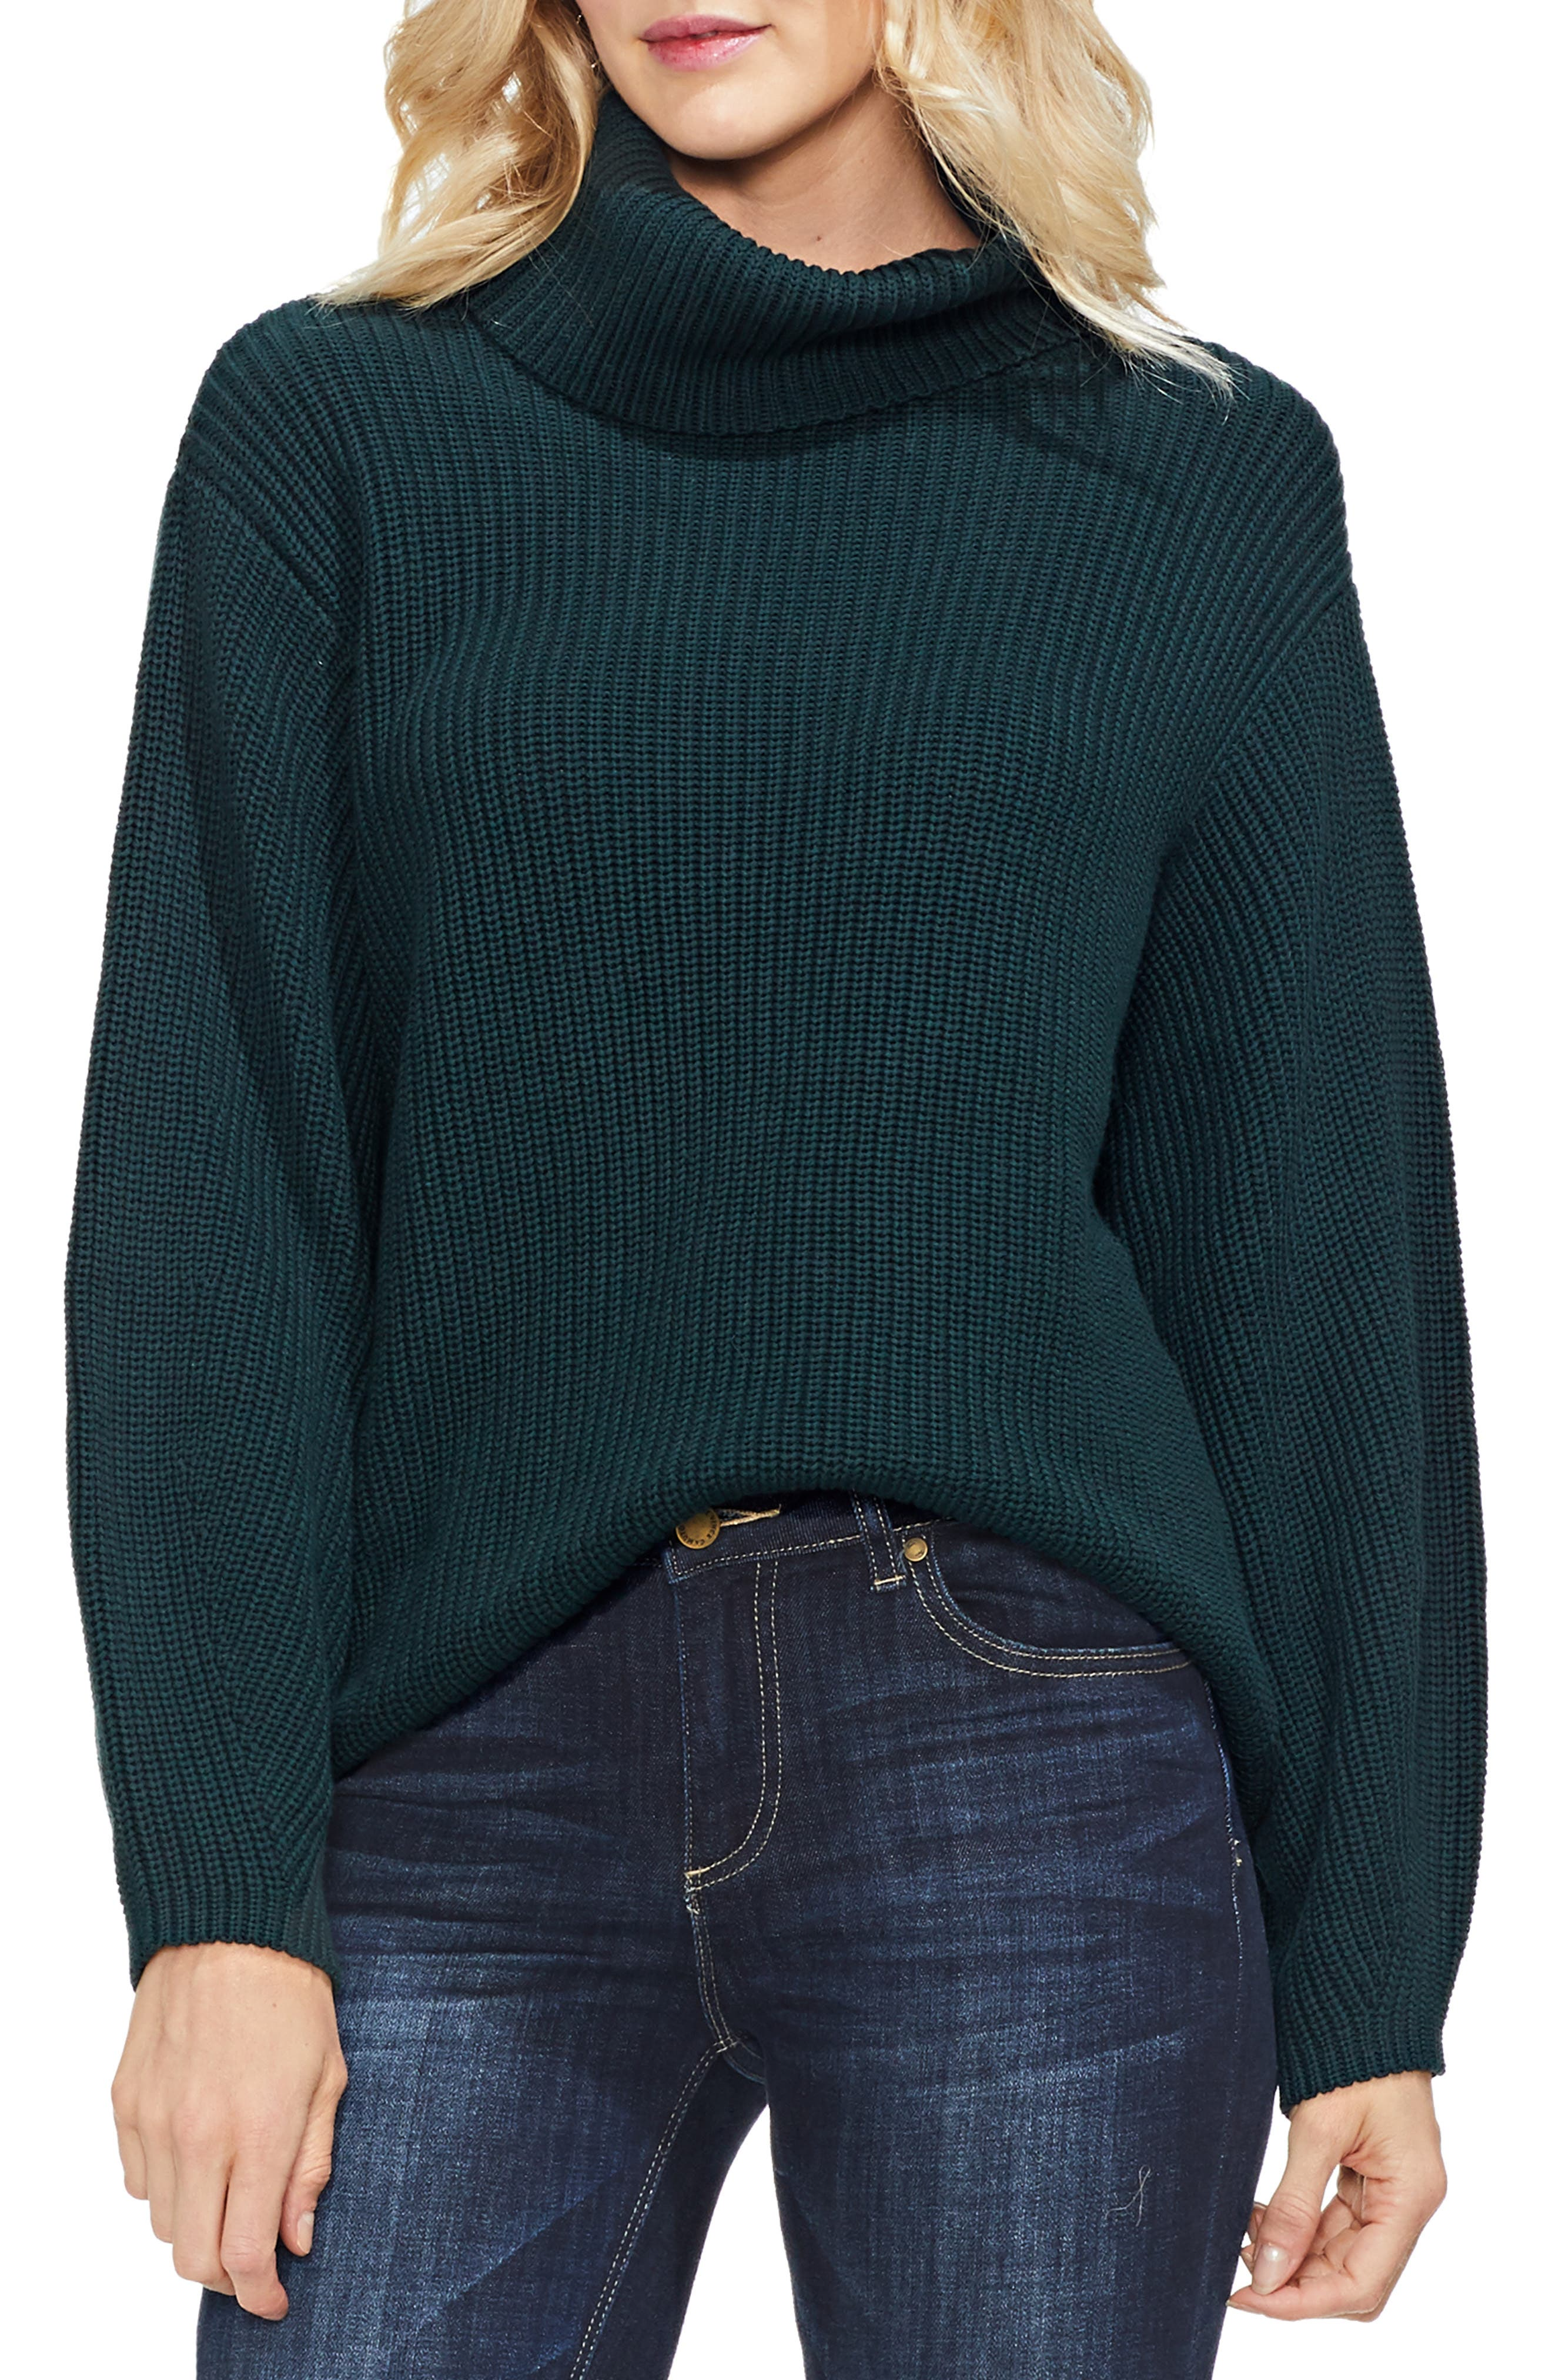 Slouchy Turtleneck Sweater,                             Main thumbnail 1, color,                             313